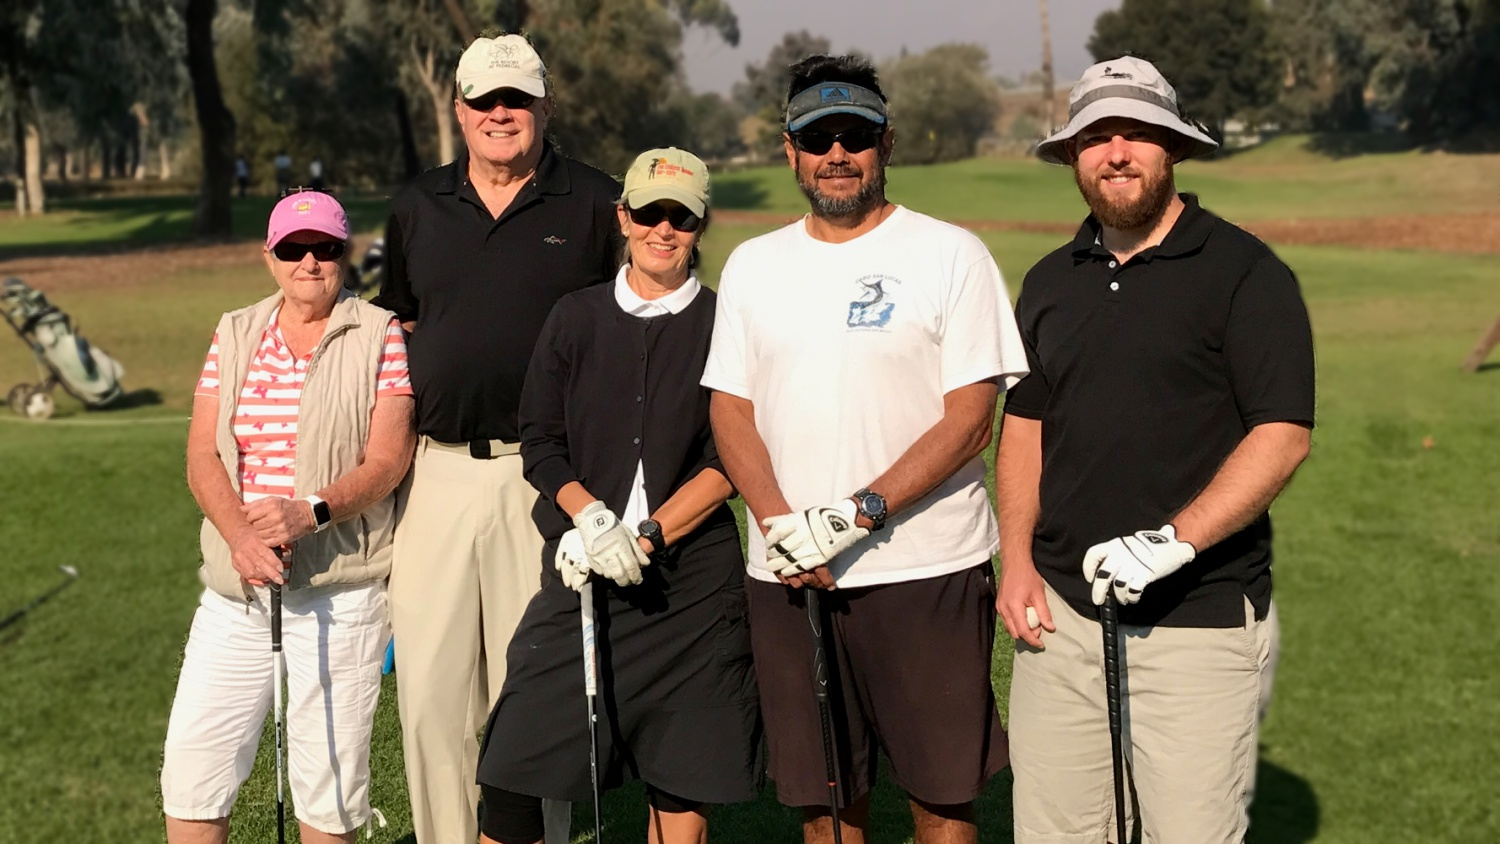 People of Don Parsons Golf - Stories from our community